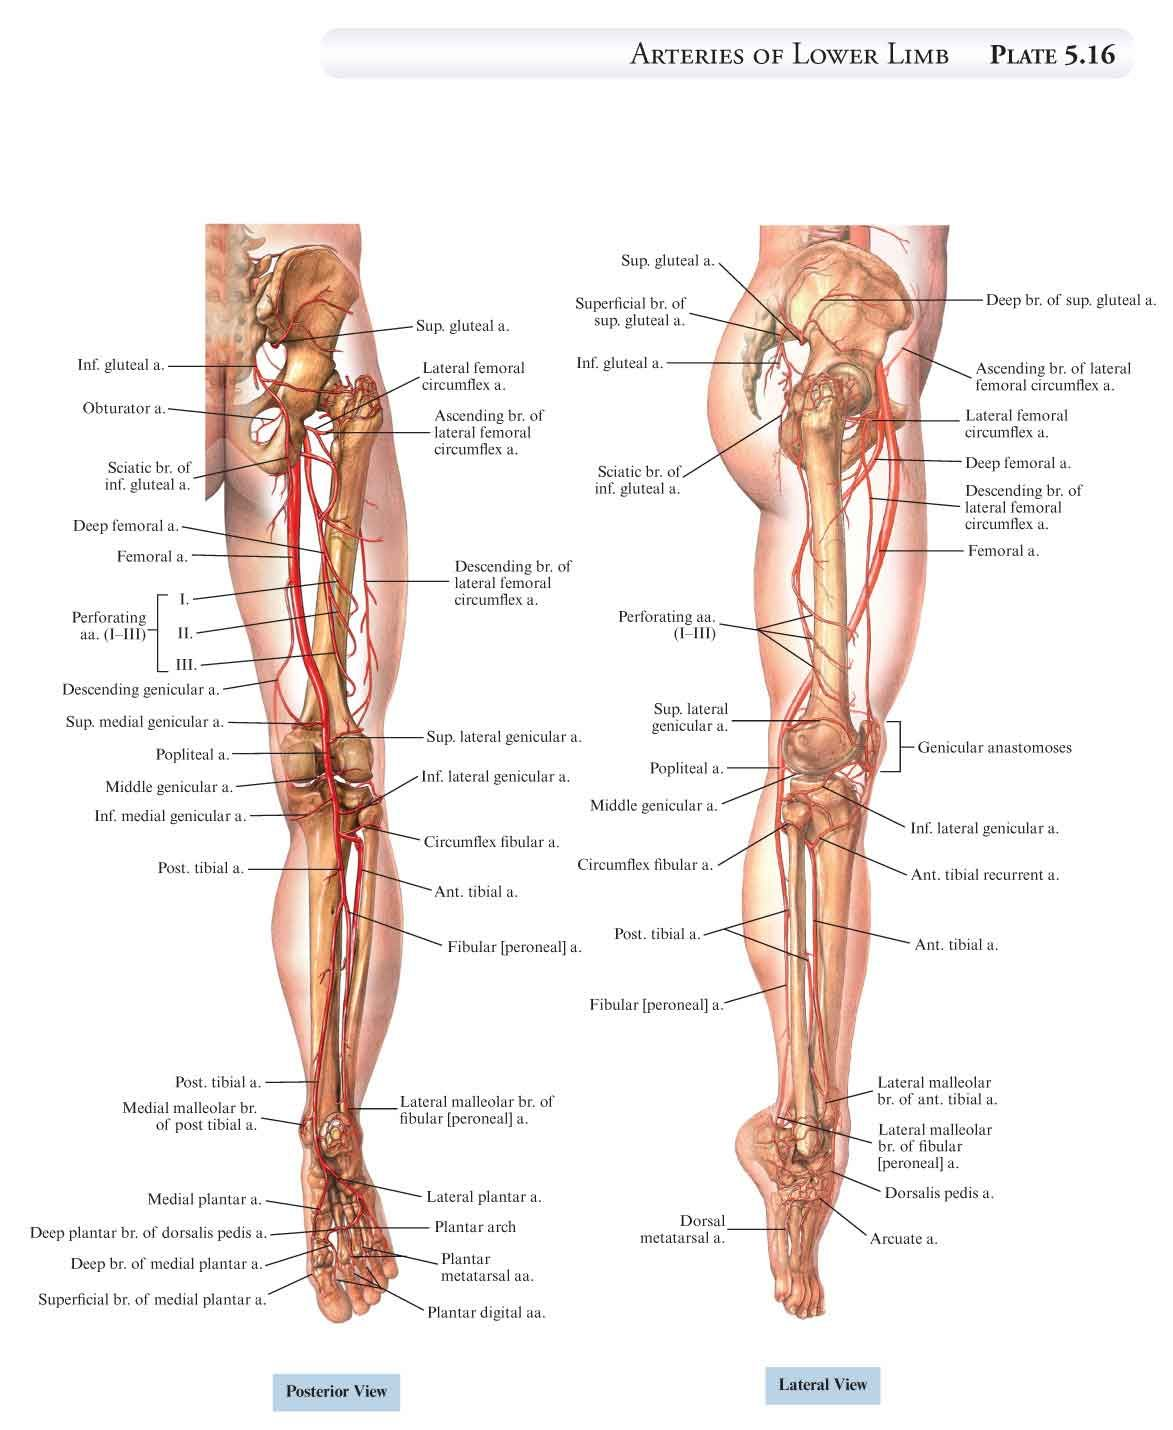 Pin By Sean Coleman On Anatomy Pinterest Anatomy Leg Anatomy